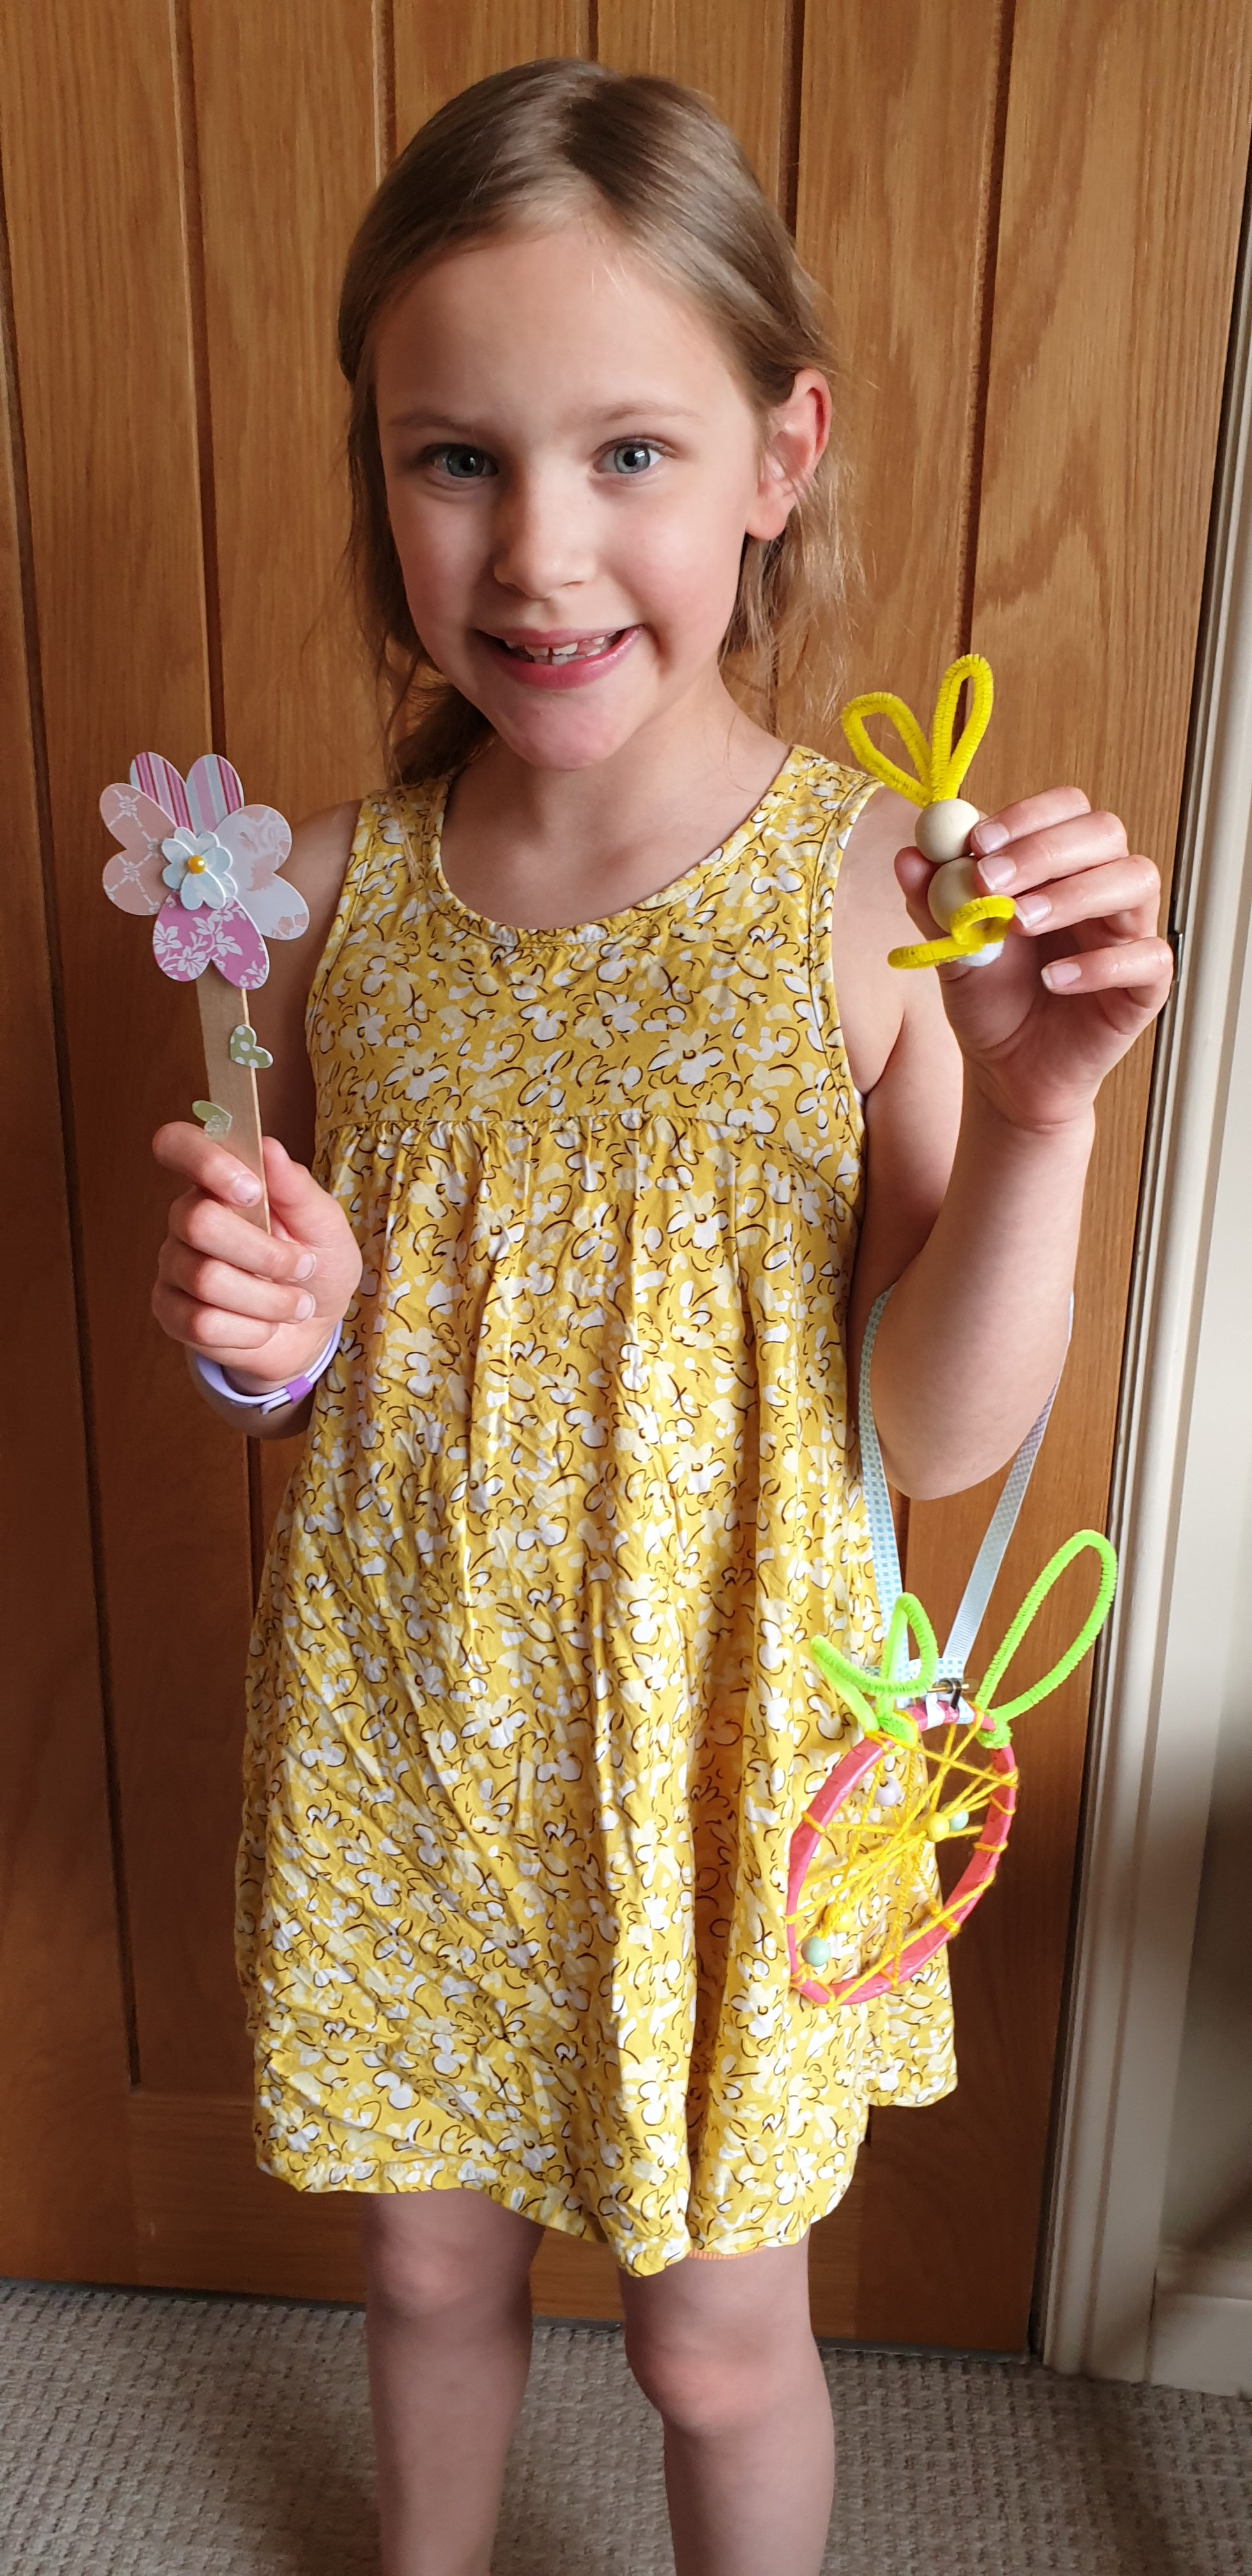 Girl in yellow dress holding Easter dream catcher